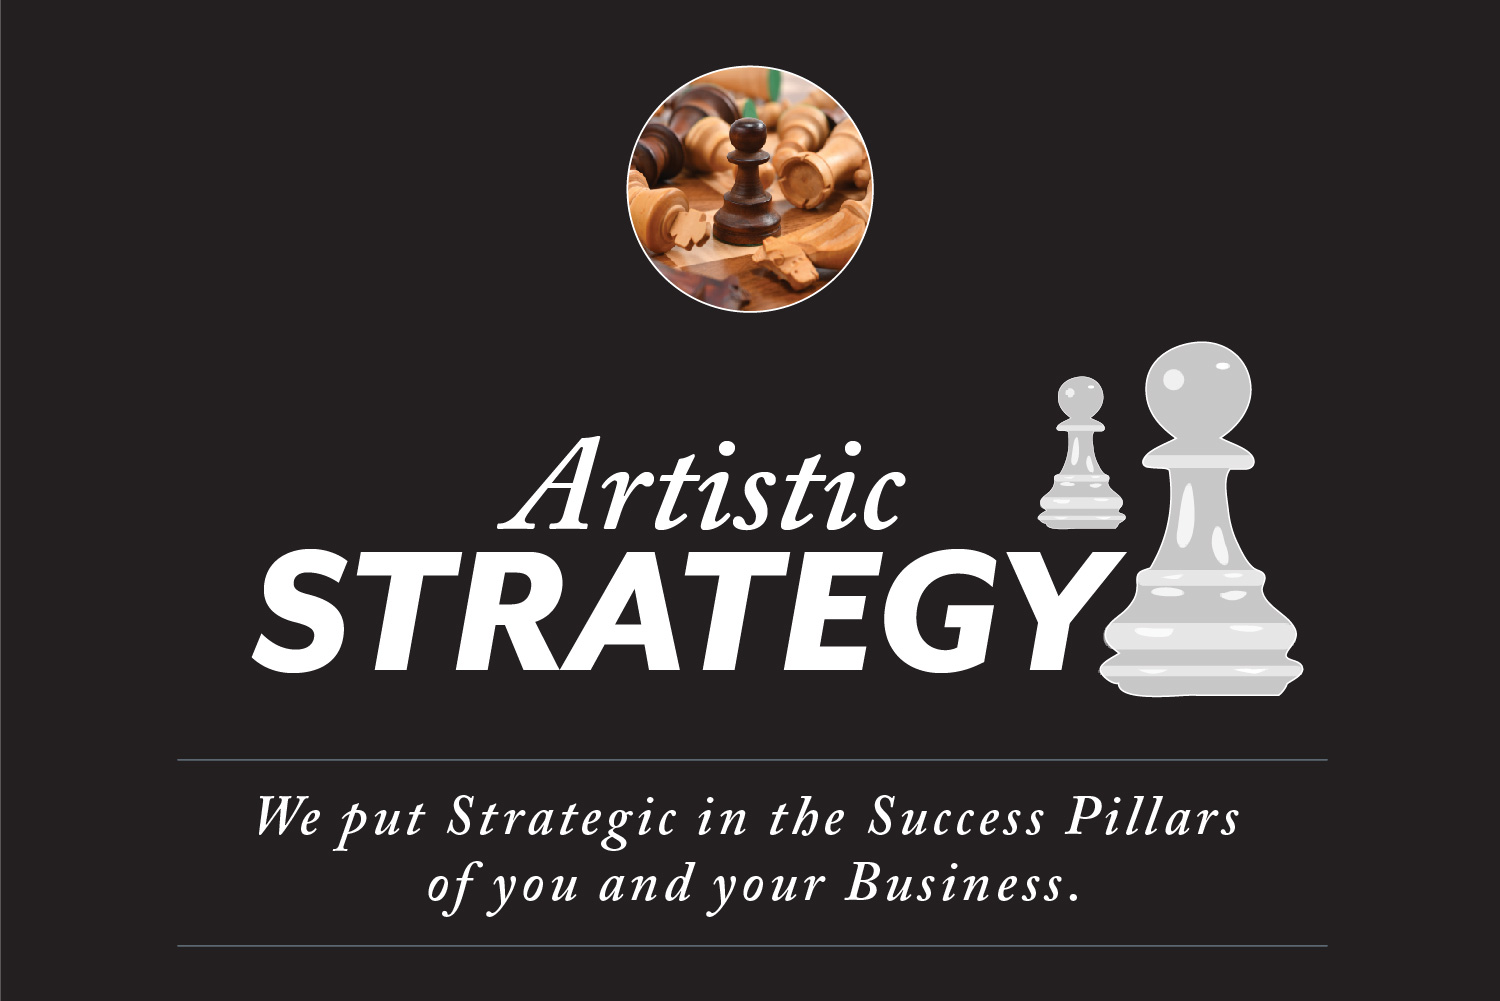 Artistic Strategy